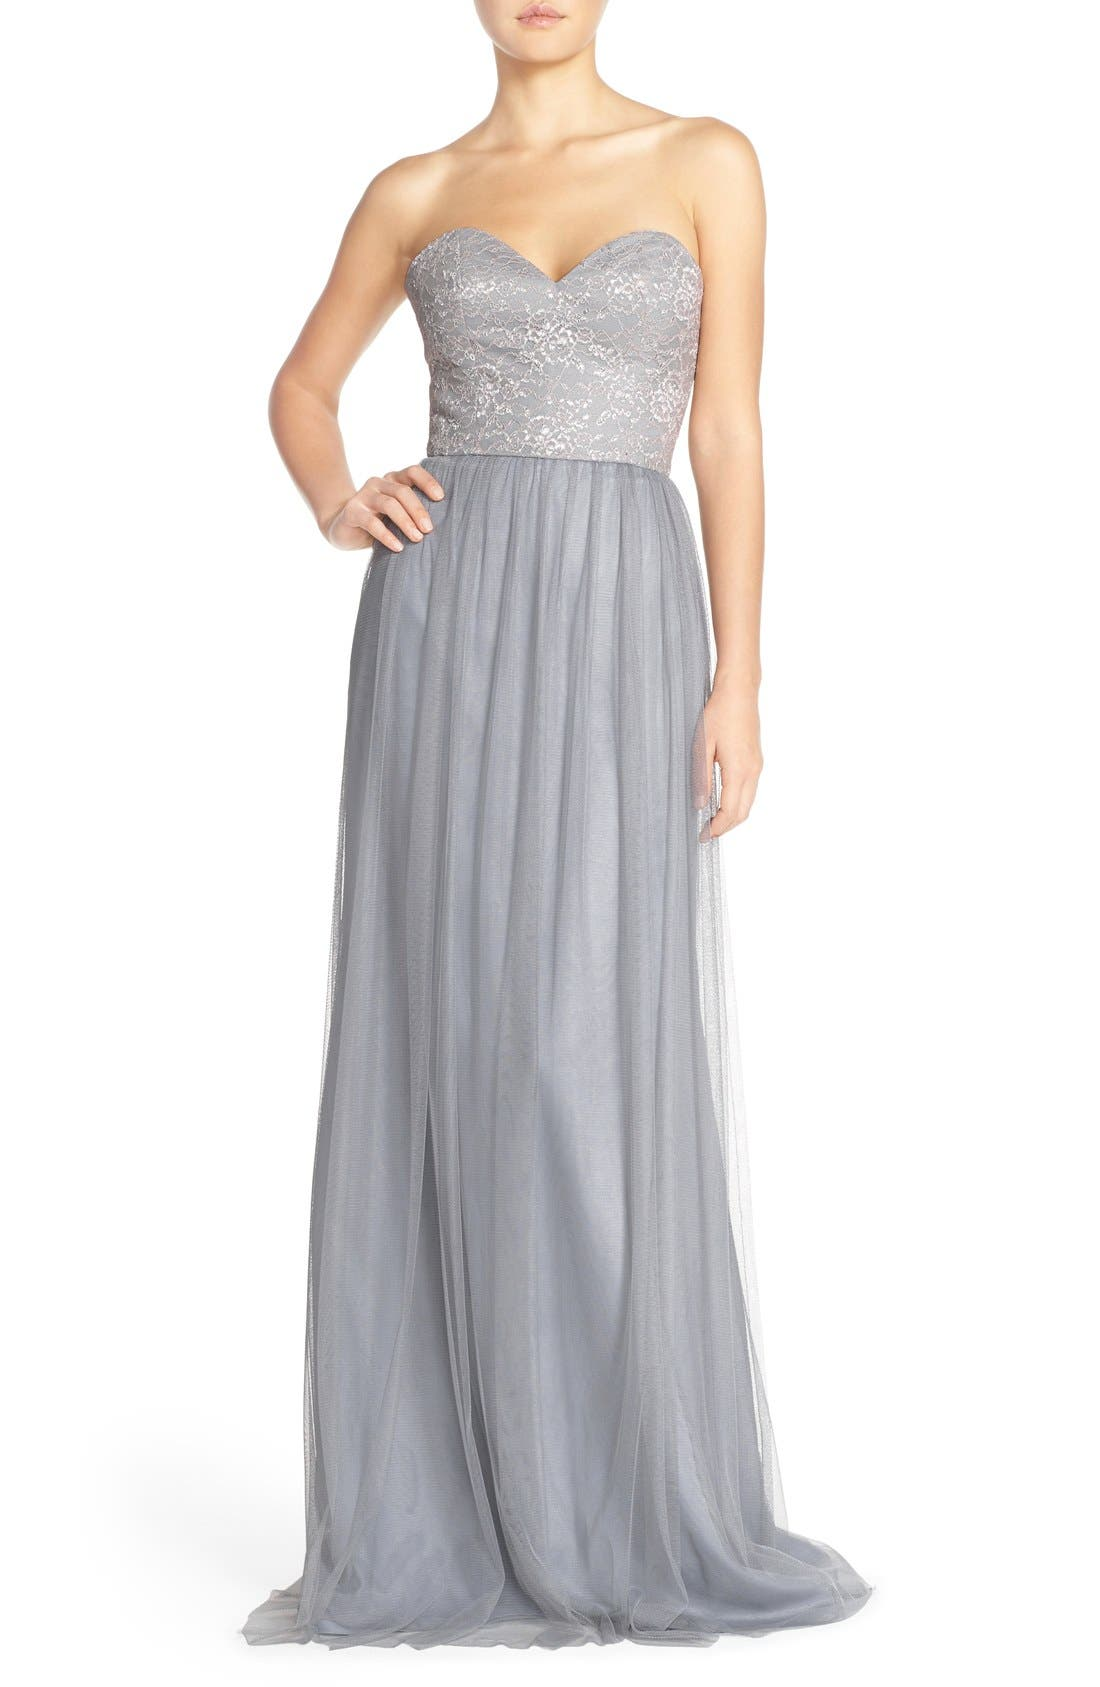 Alternate Image 1 Selected - Hayley Paige Occasions Strapless Metallic Lace & Net Gown